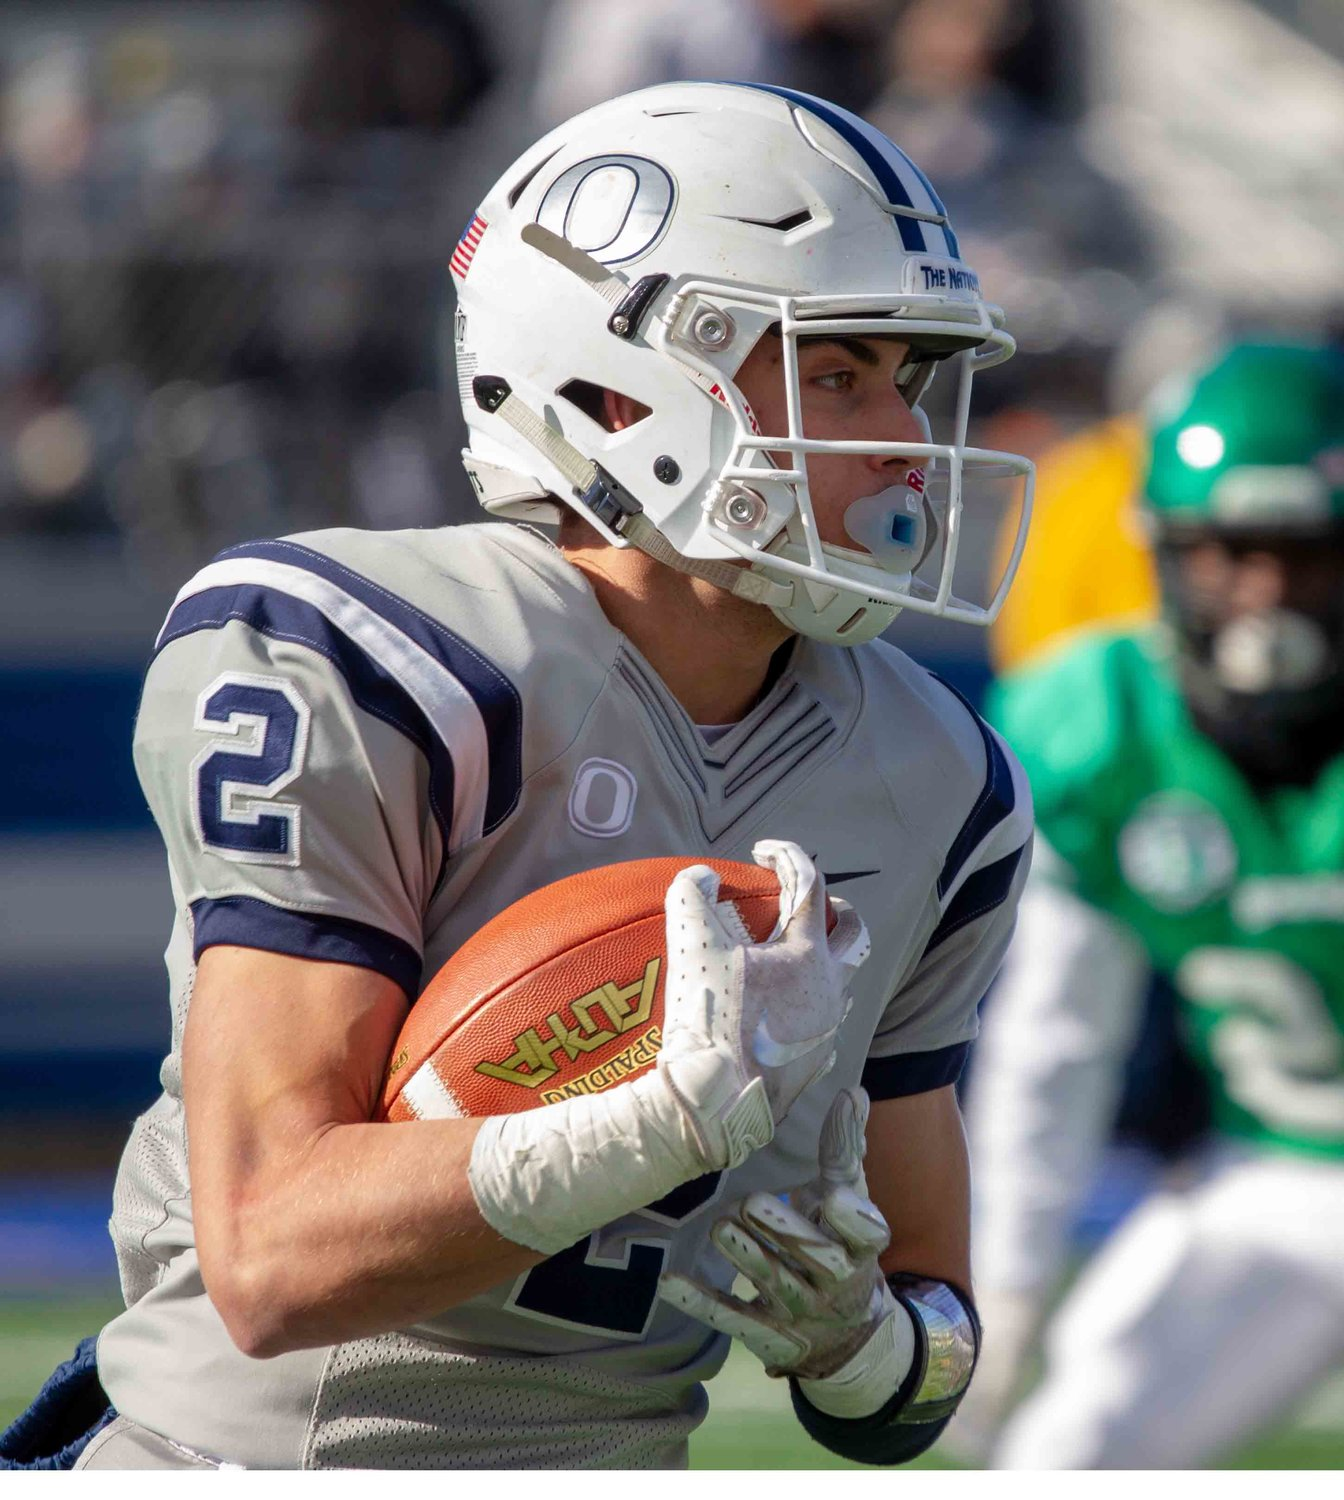 Jake Lazzaro had 309 yards receiving and 5 touchdowns in the Sailors' 62-33 semifinal win over Farmingdale.